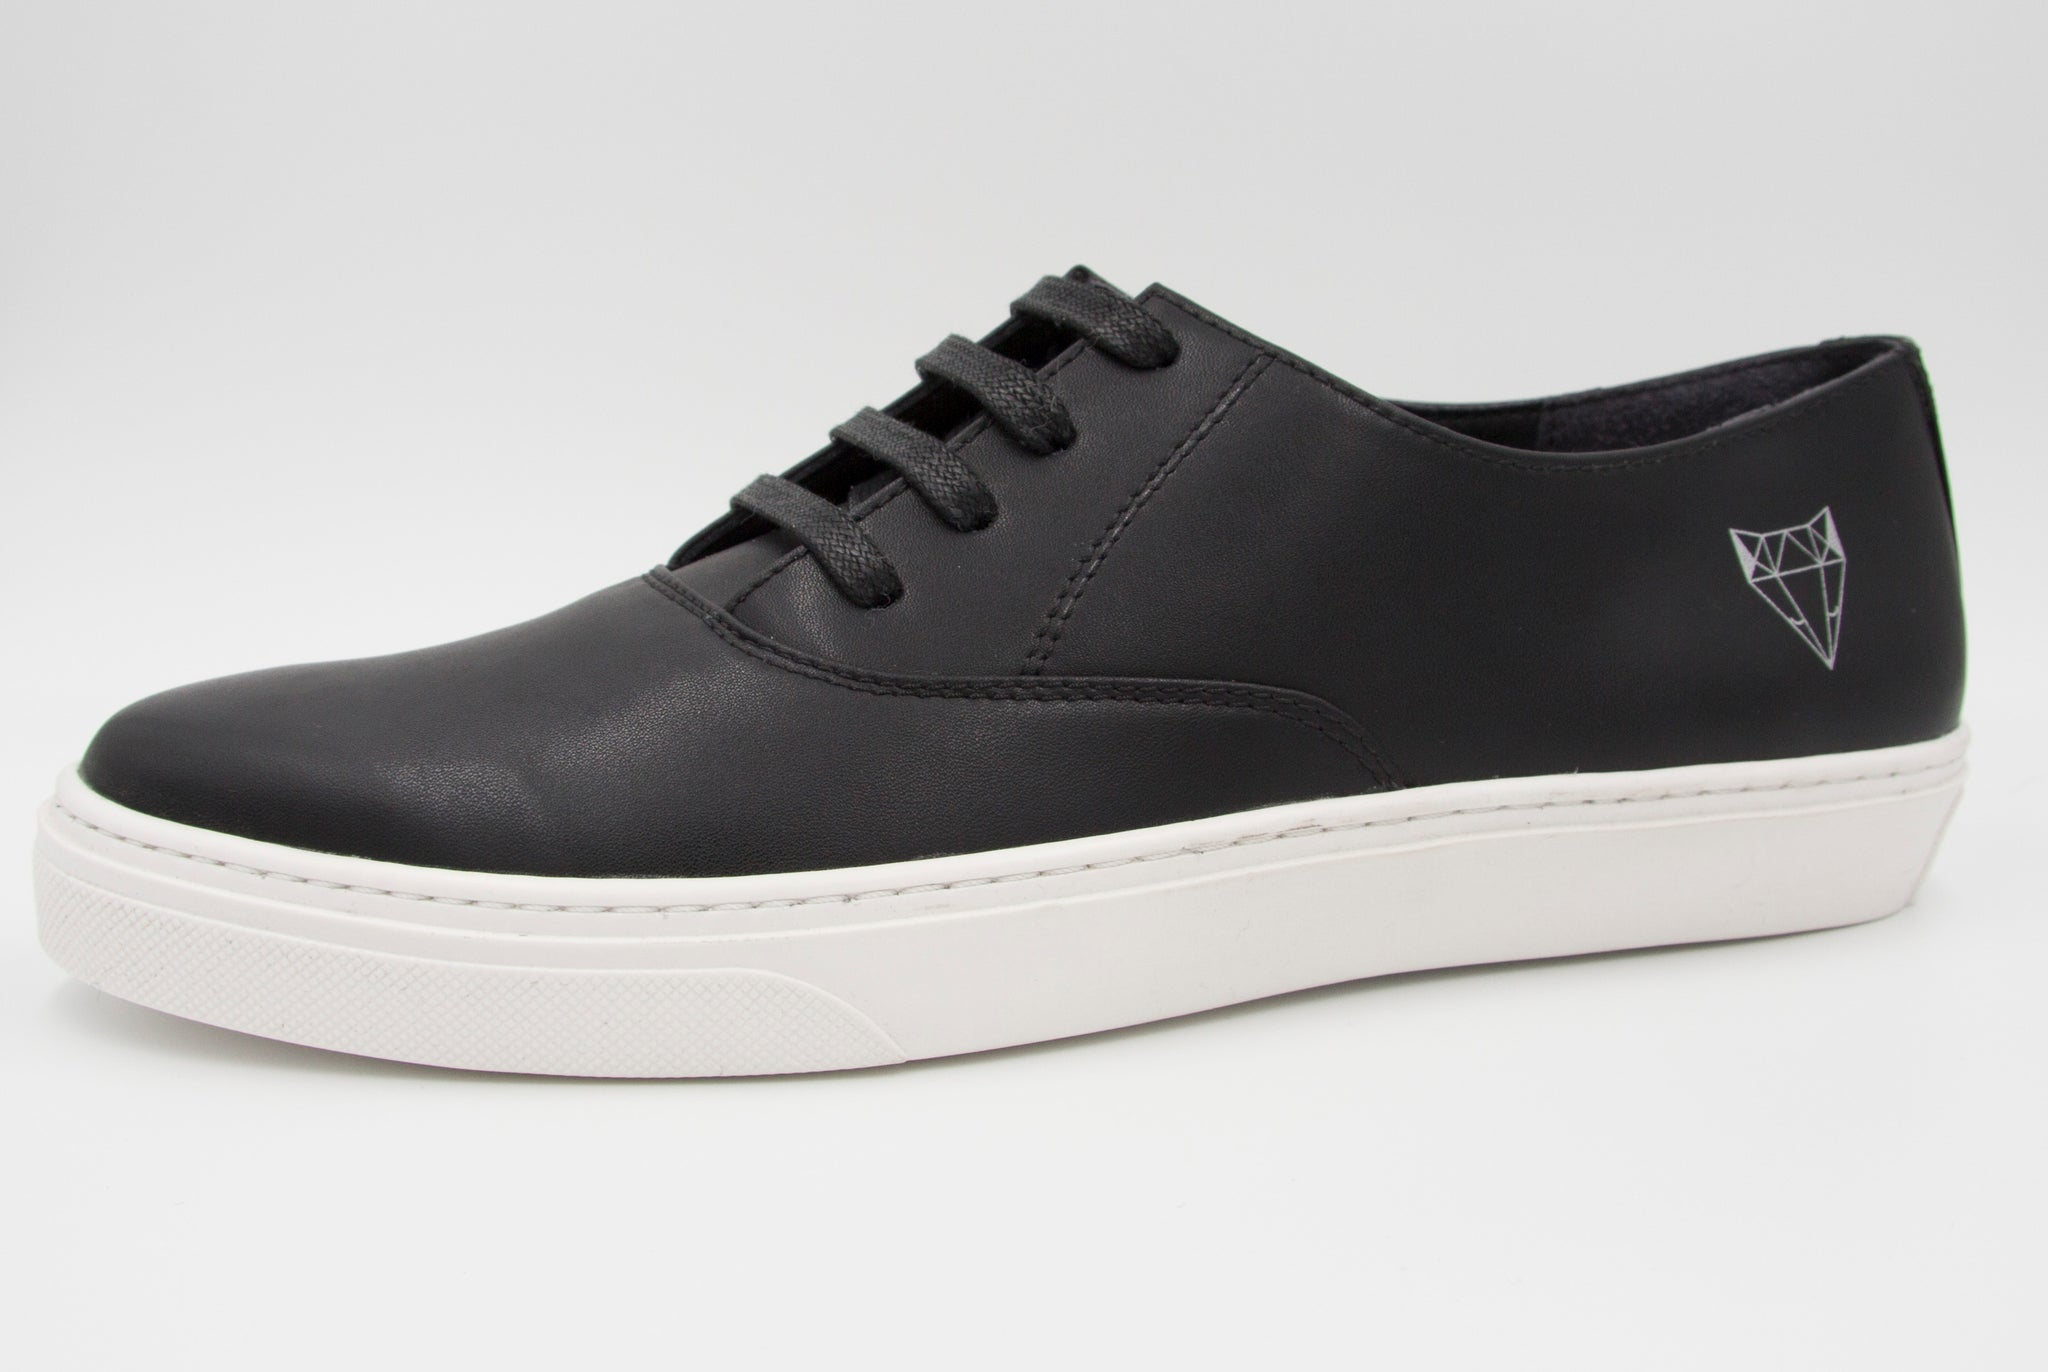 Vegan black sneakers made in the EU of cruelty-free materials.